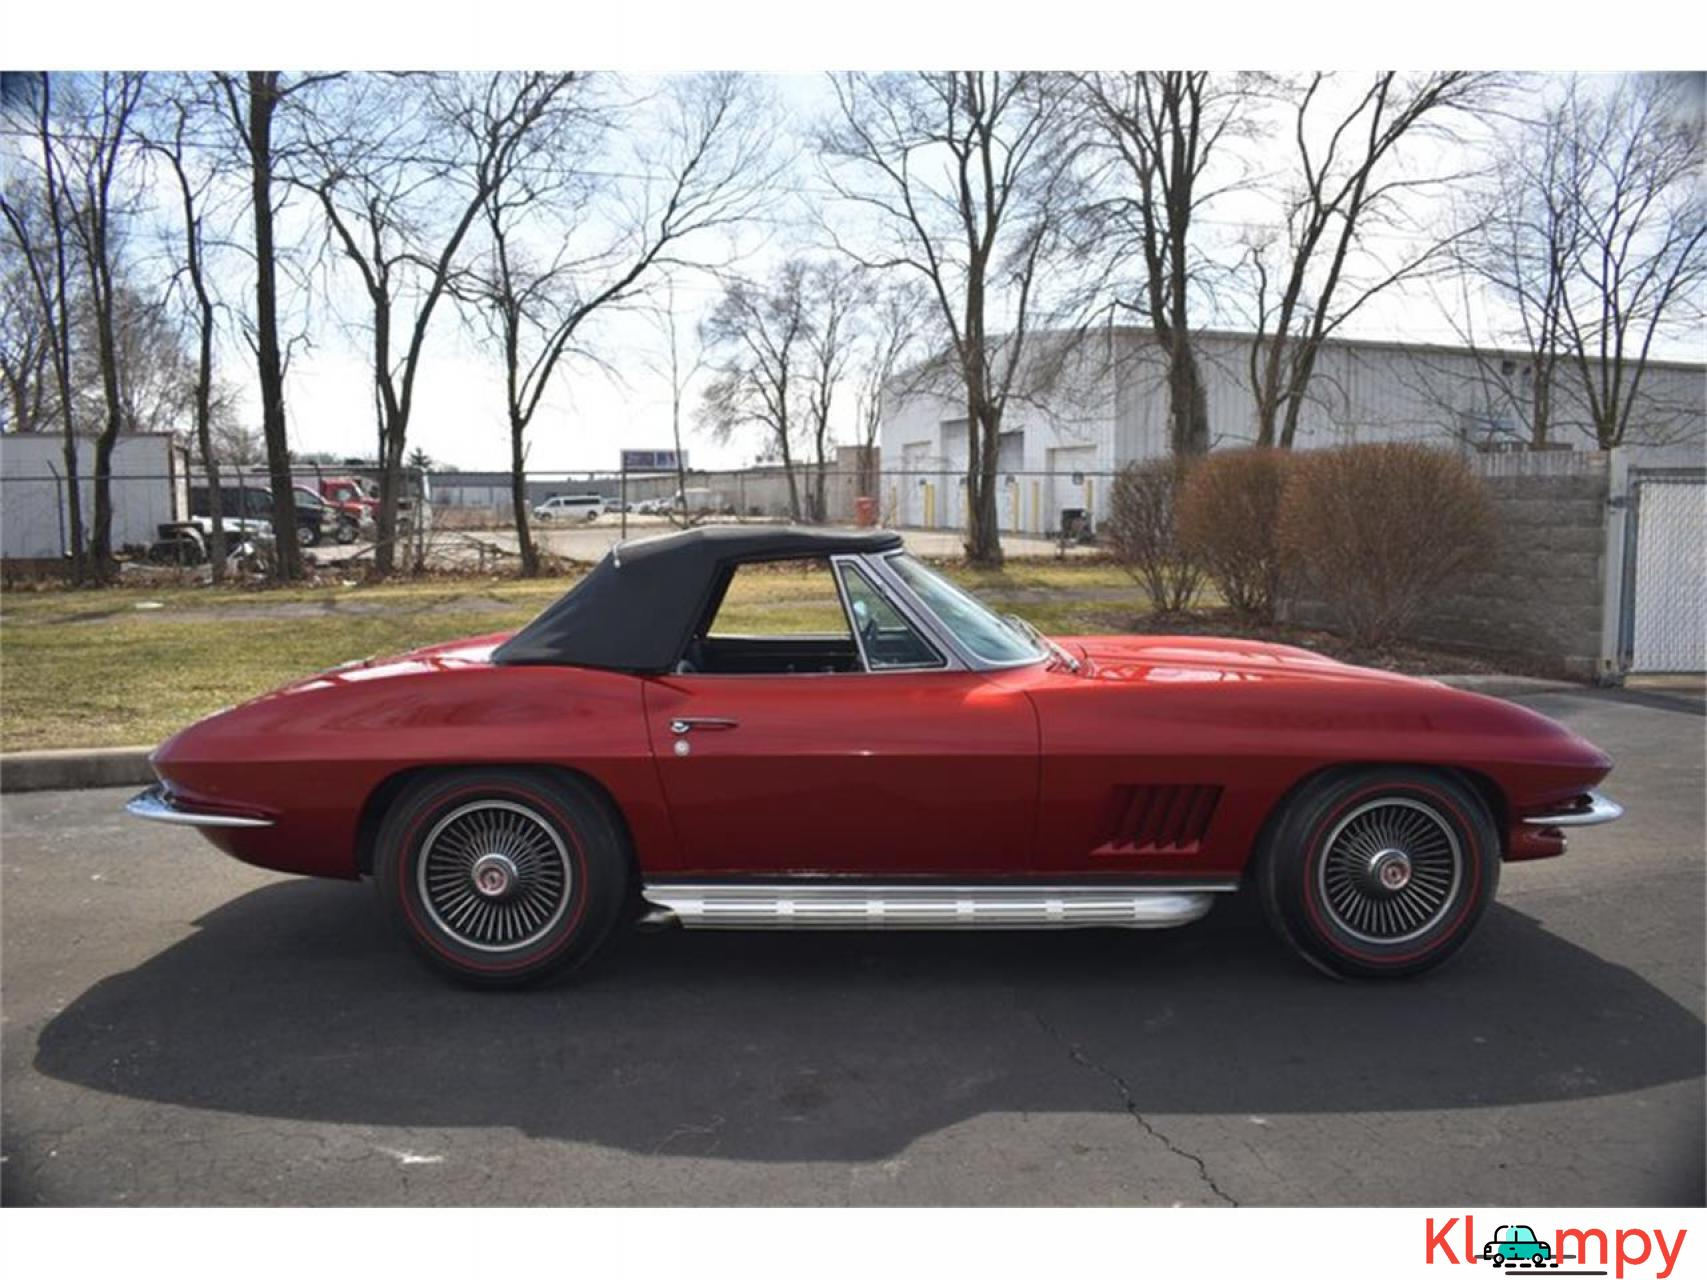 1967 Chevrolet Corvette 350HP 327 Cu In V8 - 10/20